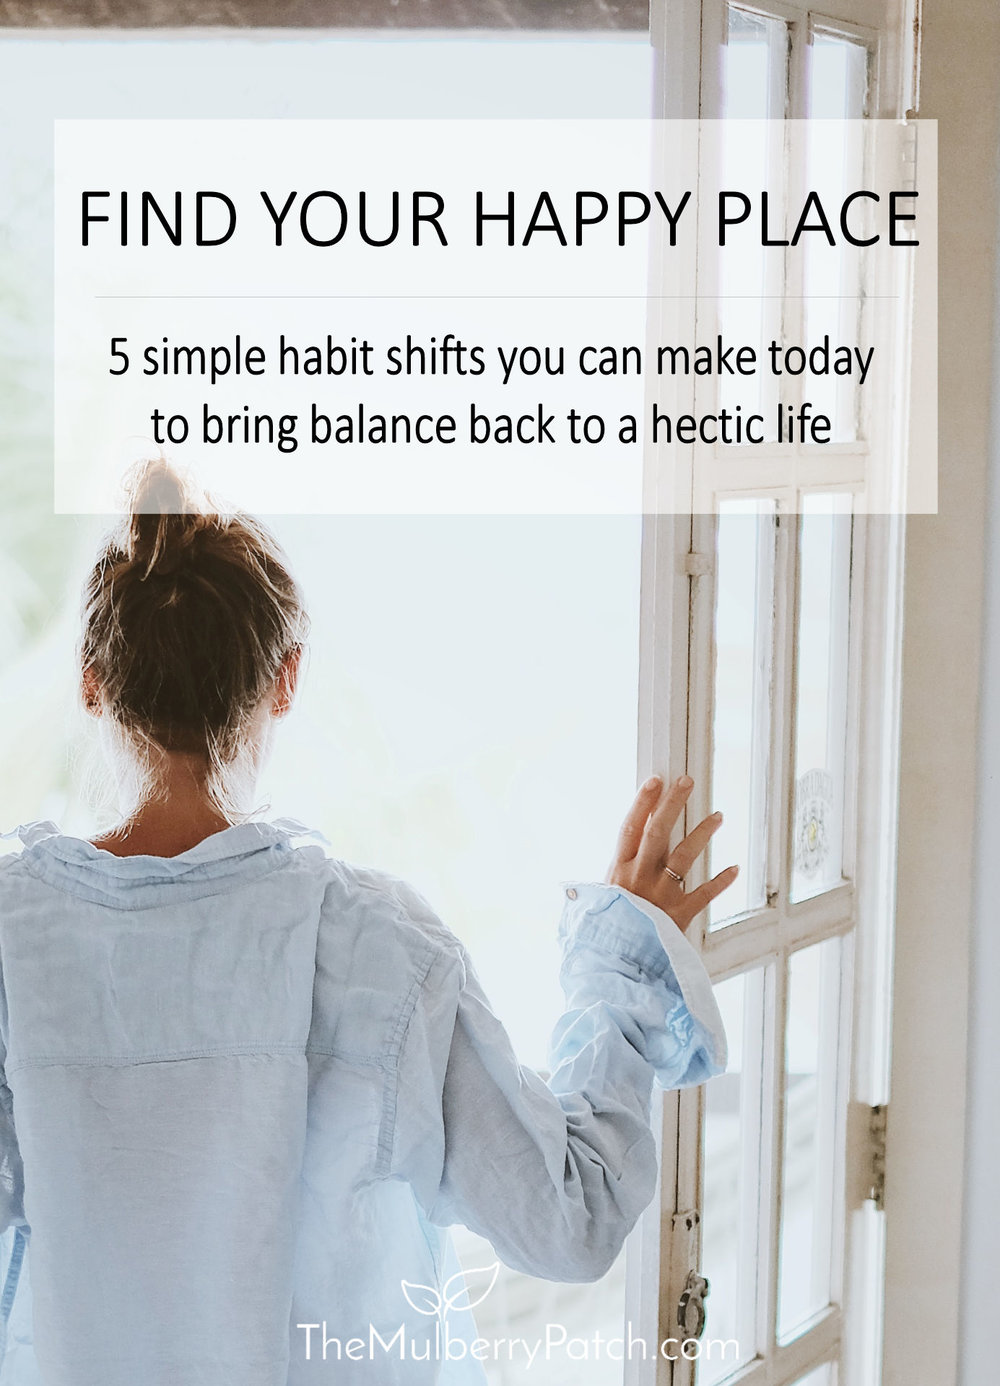 5 Habit Shifts to Bring Balance to a Hectic Life